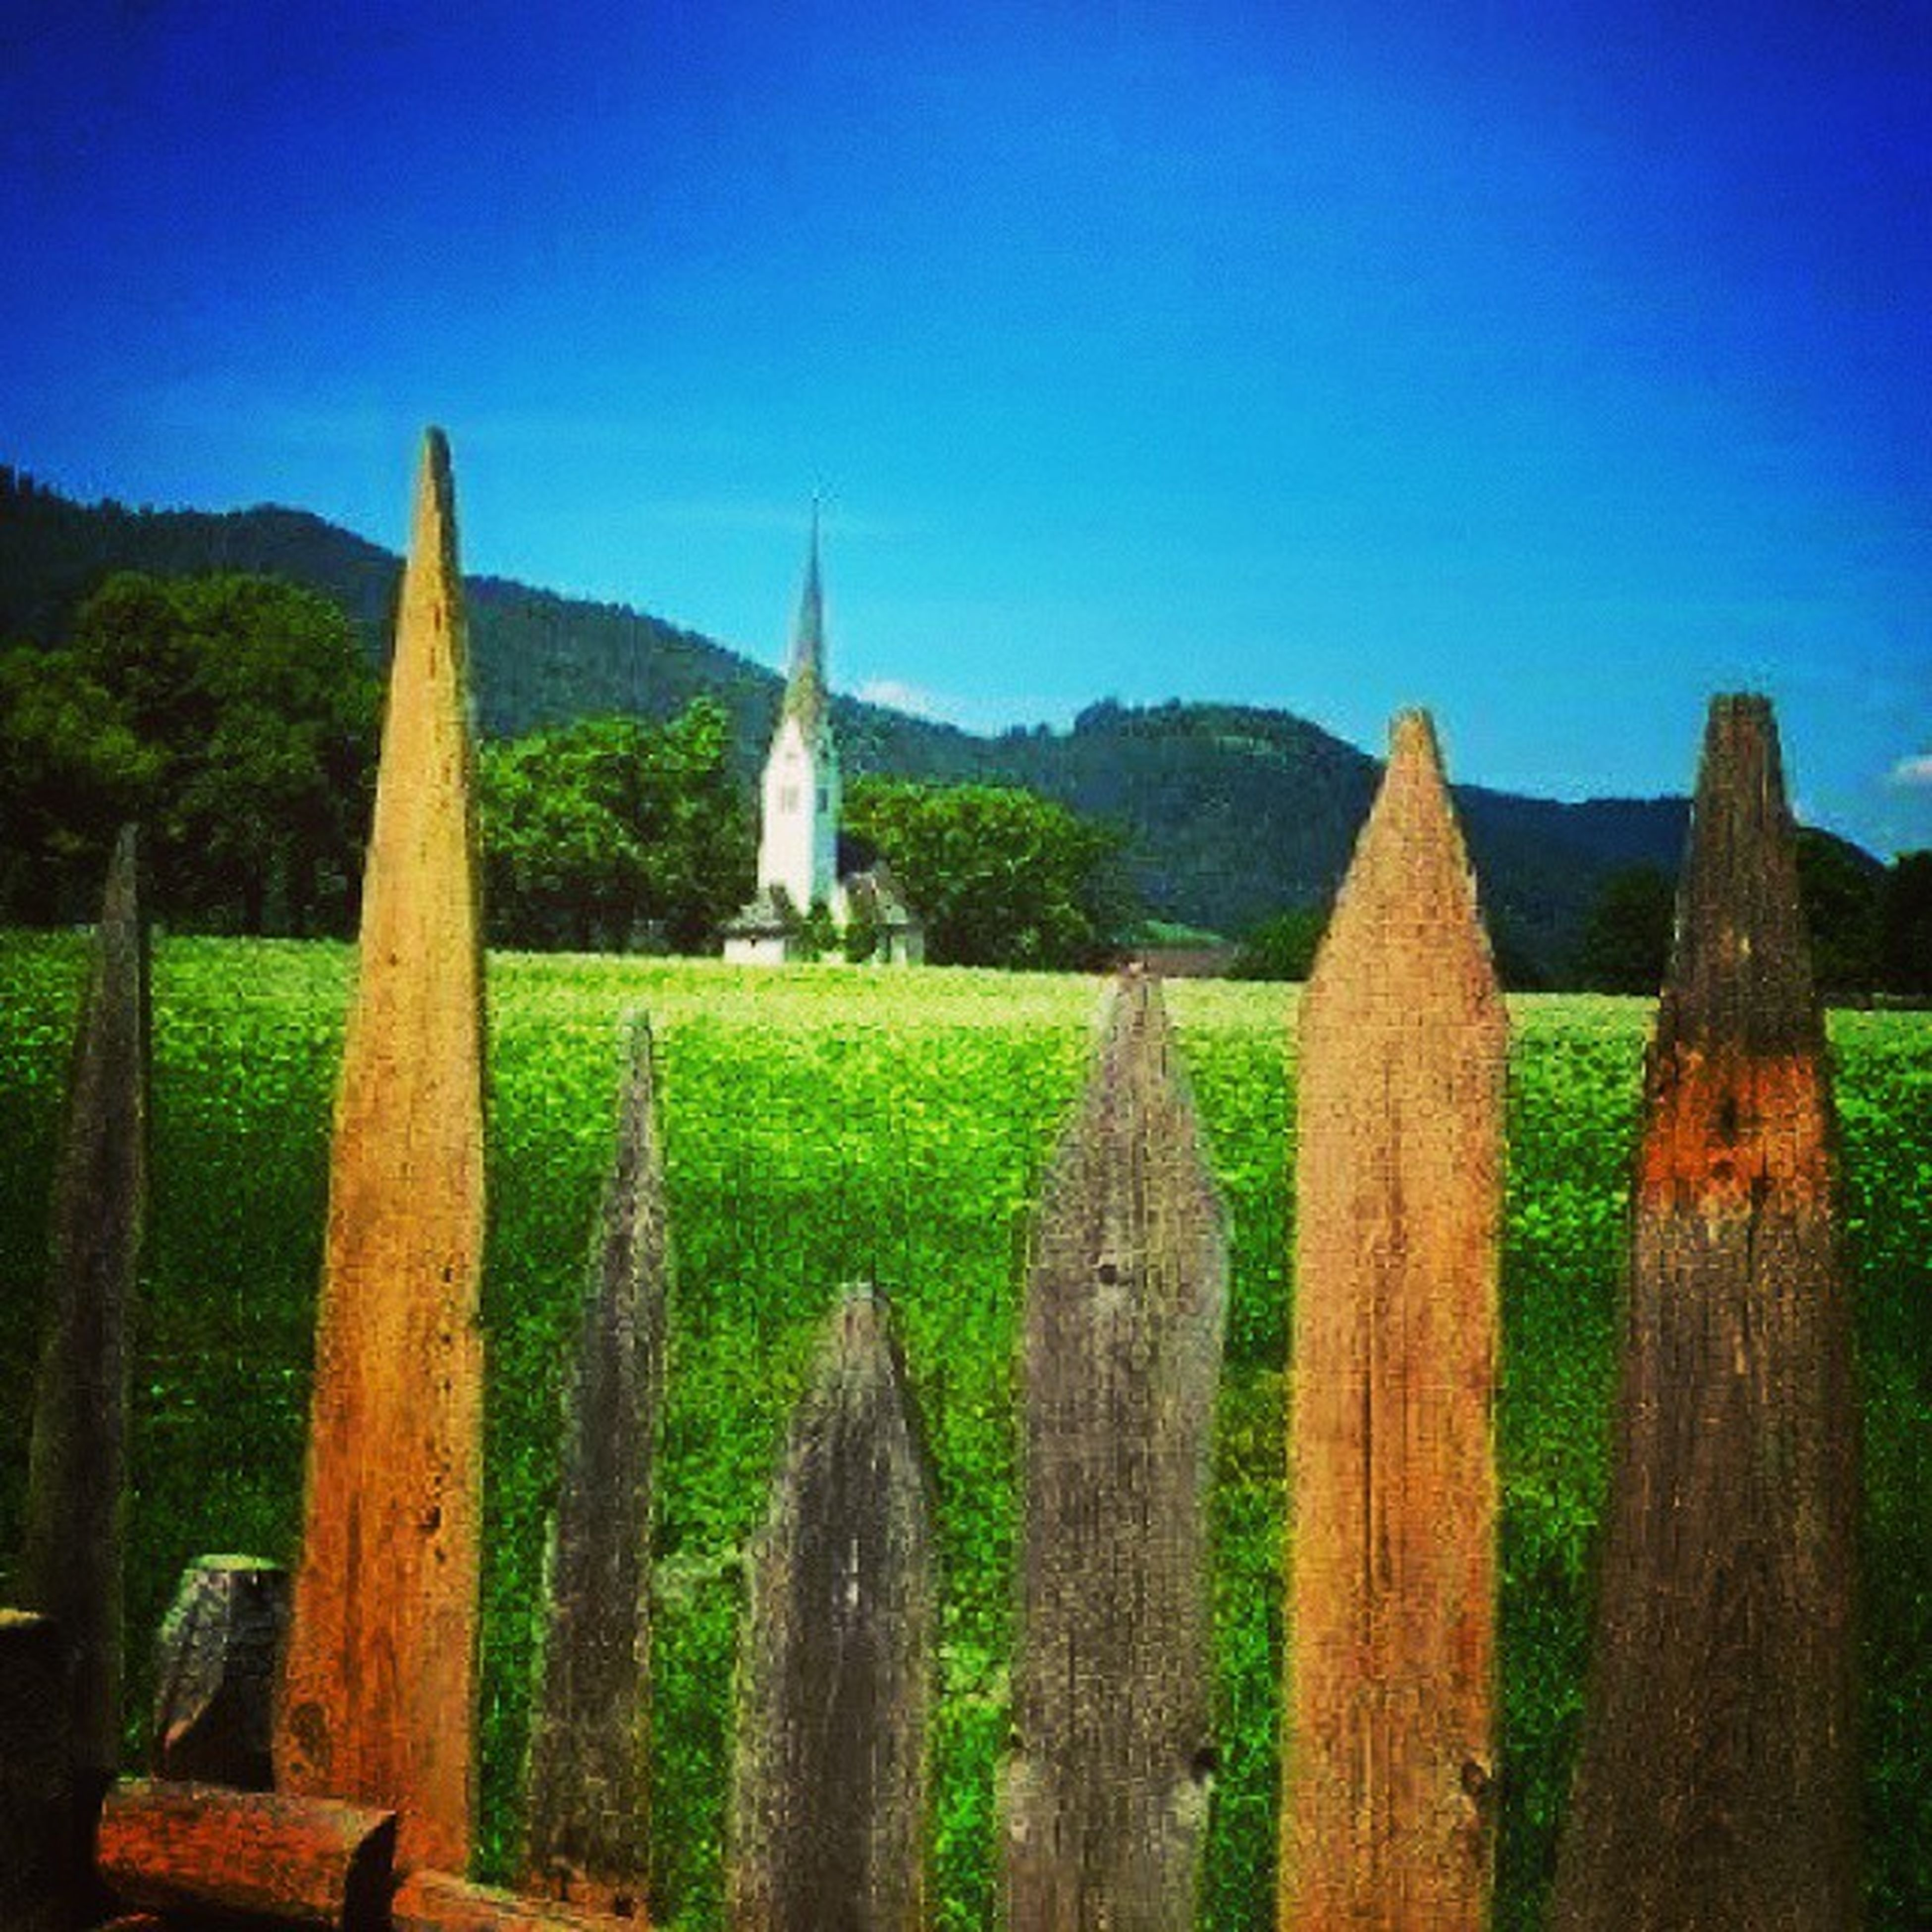 blue, clear sky, field, rural scene, agriculture, tranquility, tranquil scene, landscape, copy space, farm, grass, wood - material, nature, scenics, beauty in nature, green color, in a row, fence, sunlight, no people